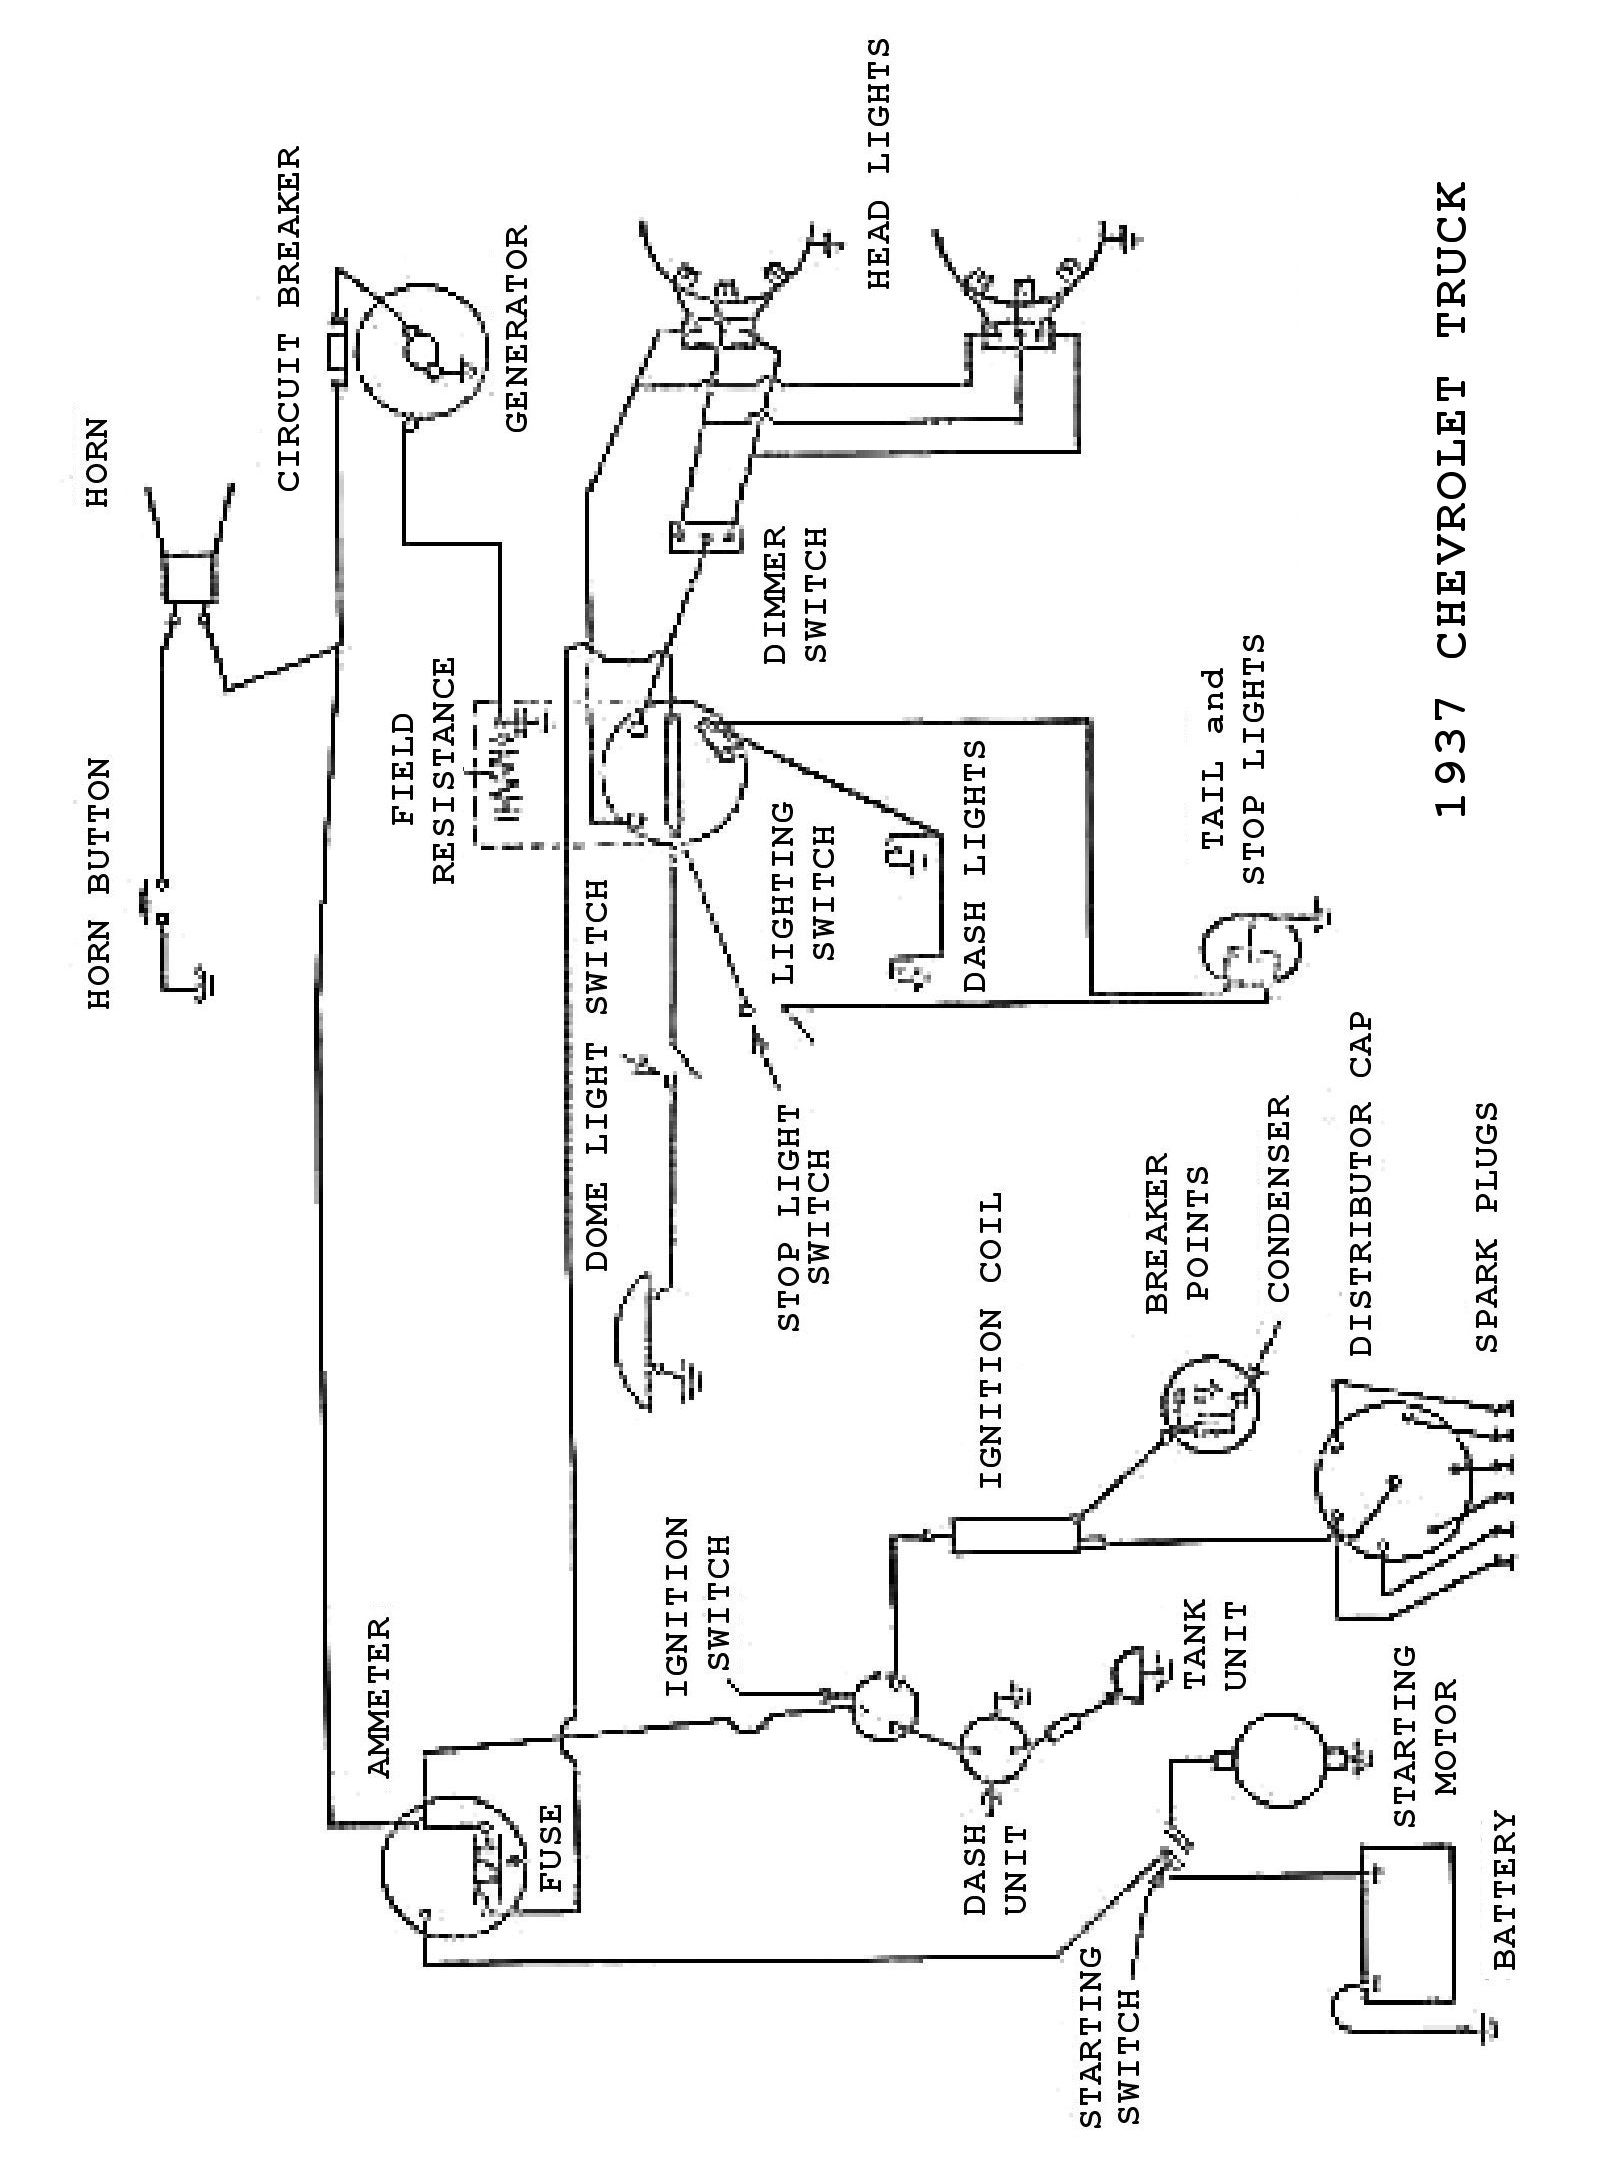 AV1j 9016 together with Mtd Mower Wiring Diagram besides Wiring Diagram For Fridge Freezer likewise 115434 318 420 Ignition Switch Bad as well Case 430 Tractor Wiring Diagram Tractor Download Free. on john deere ignition switch diagram